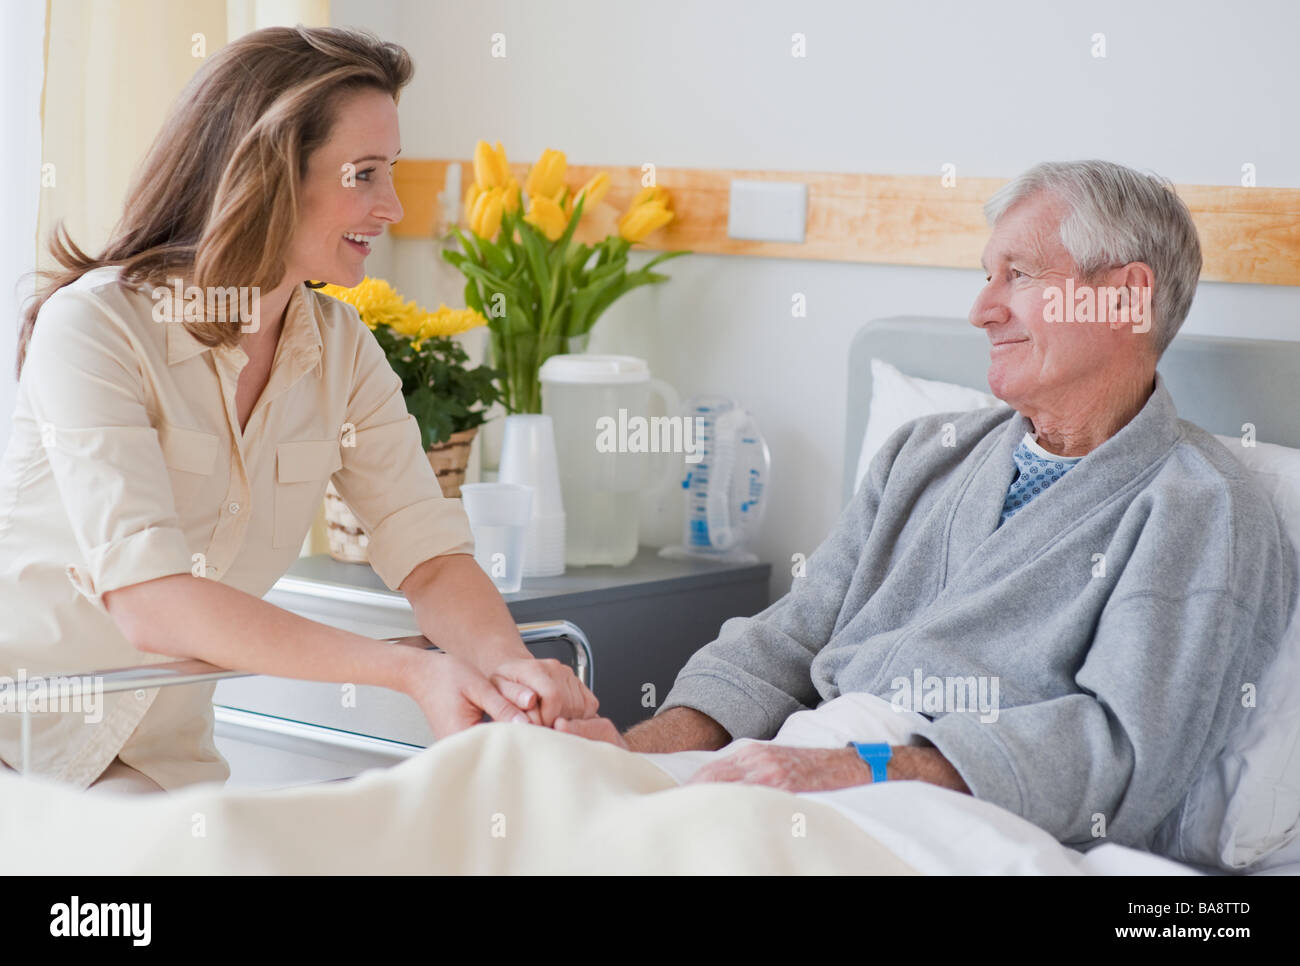 Daughter visiting senior father in hospital - Stock Image